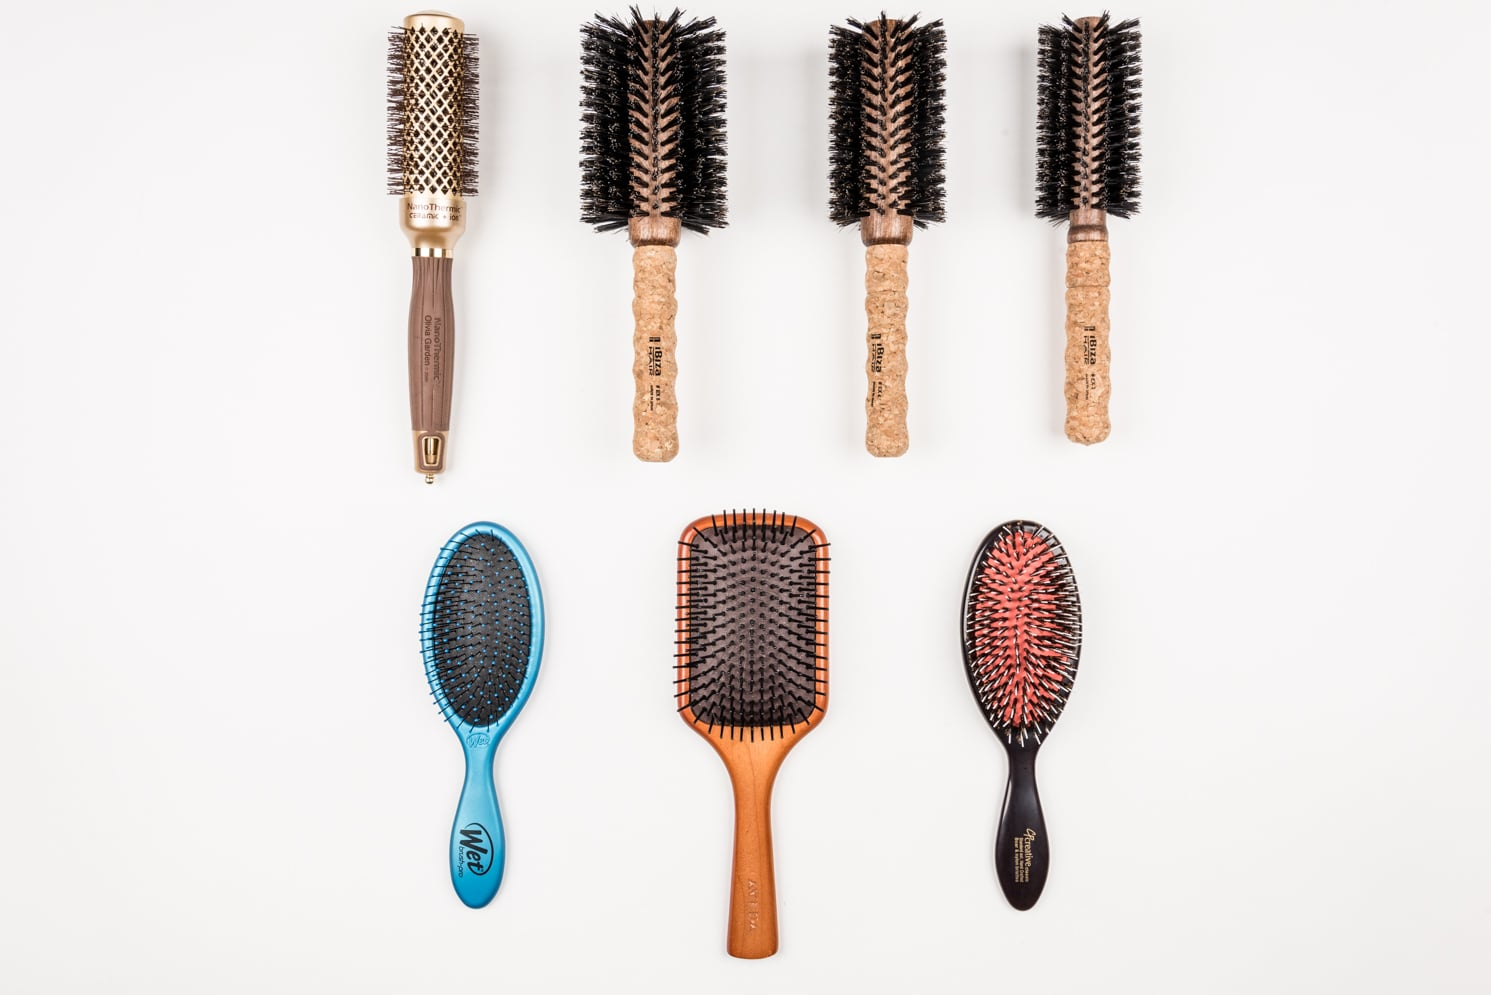 rock mama nyc lifestyle blog - how to pick the right hair brush - to get smooth hair